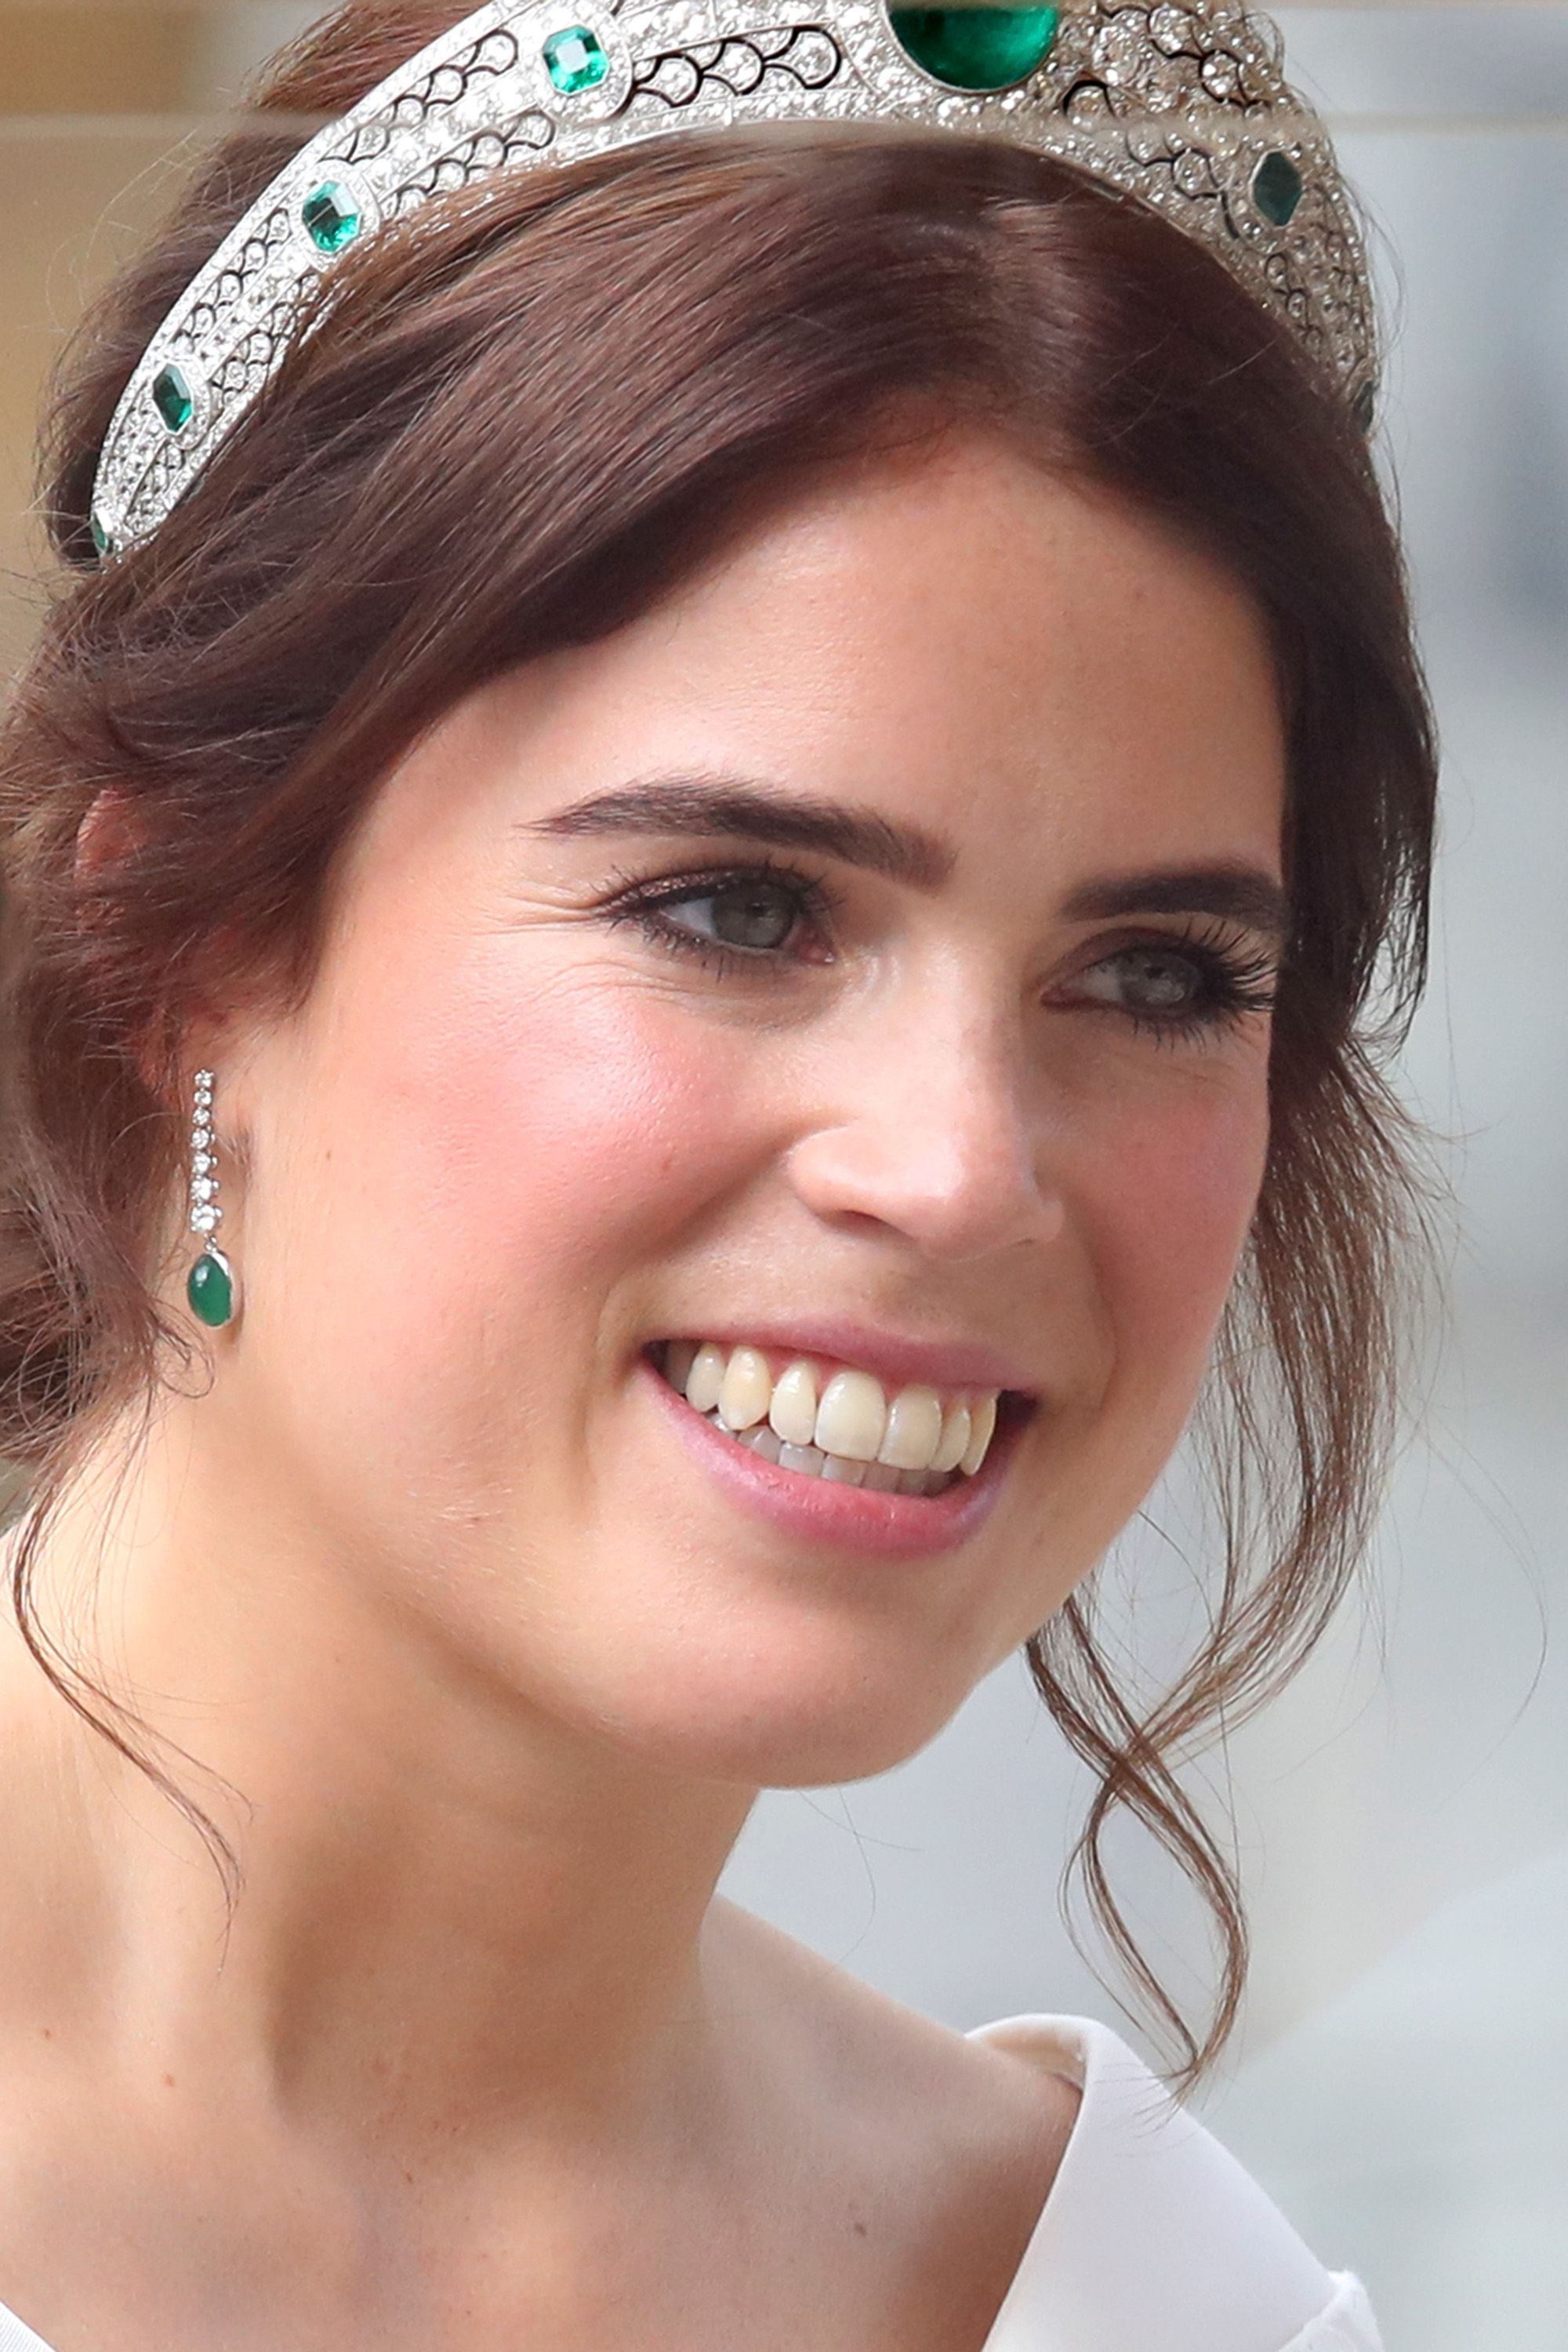 Princess Eugenie's Wedding Earrings Were a Gift